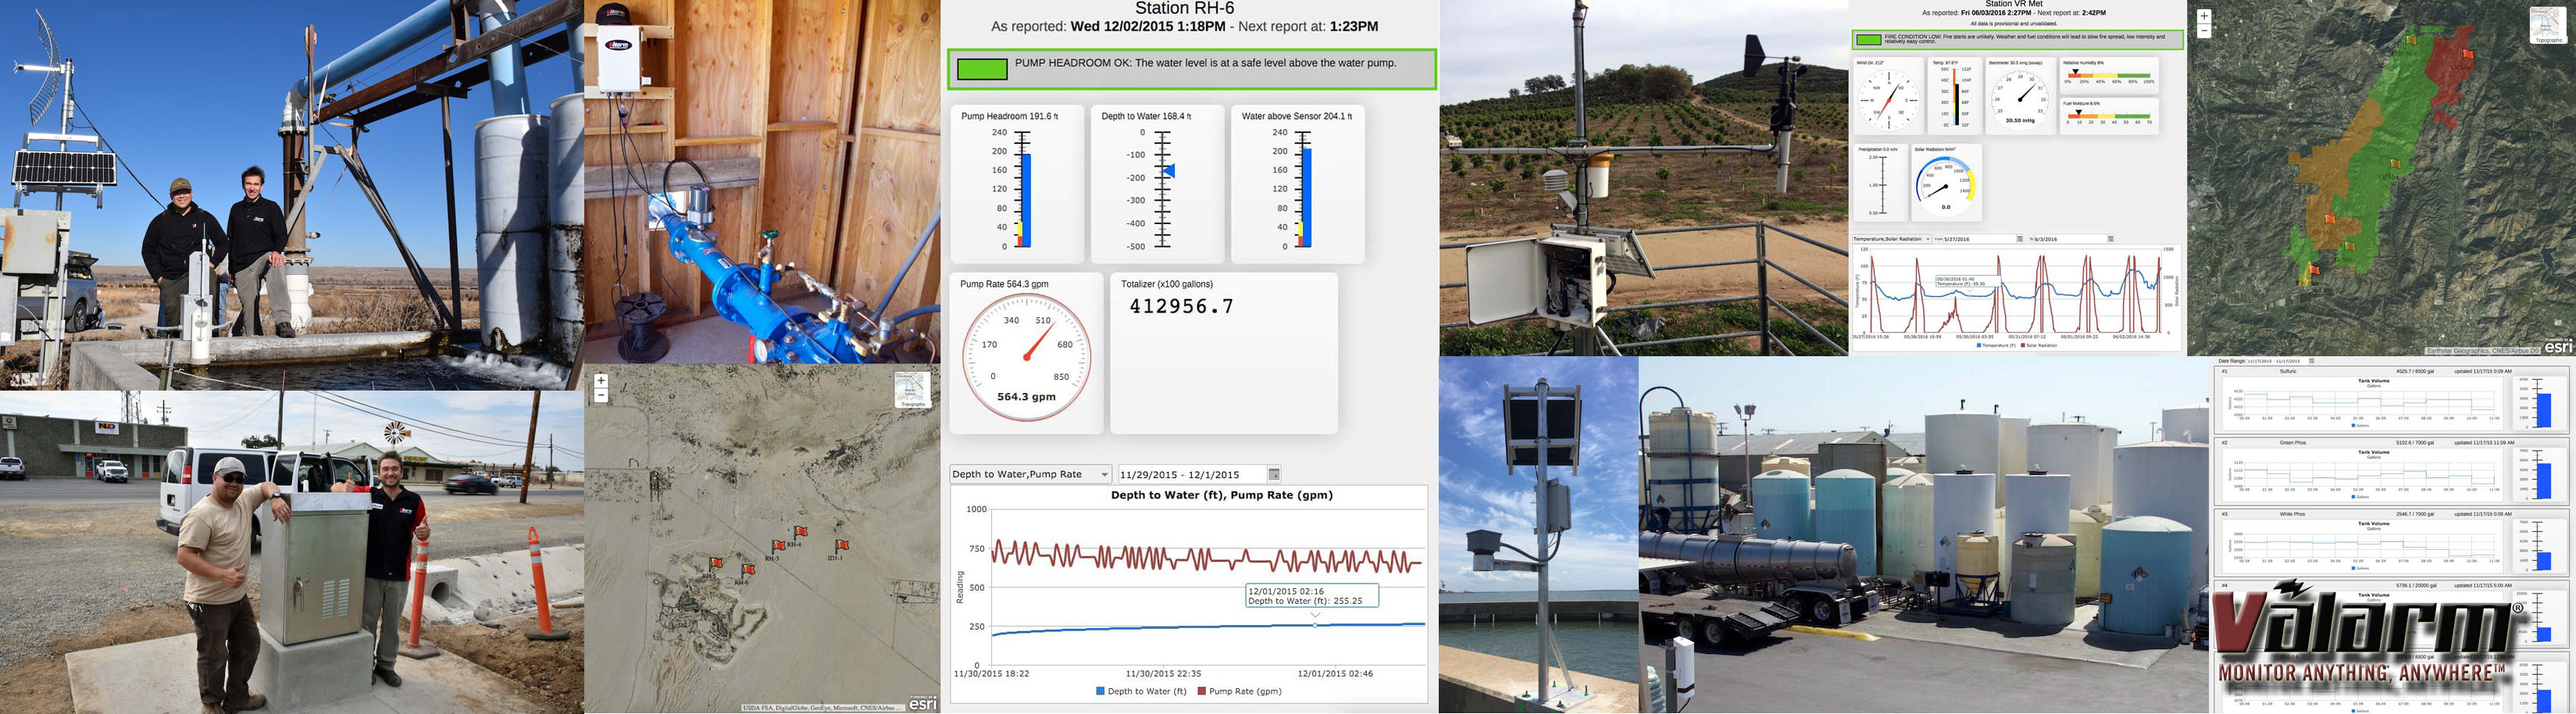 IoT Water Monitoring Systems Water Wells Flood Warnings Levels